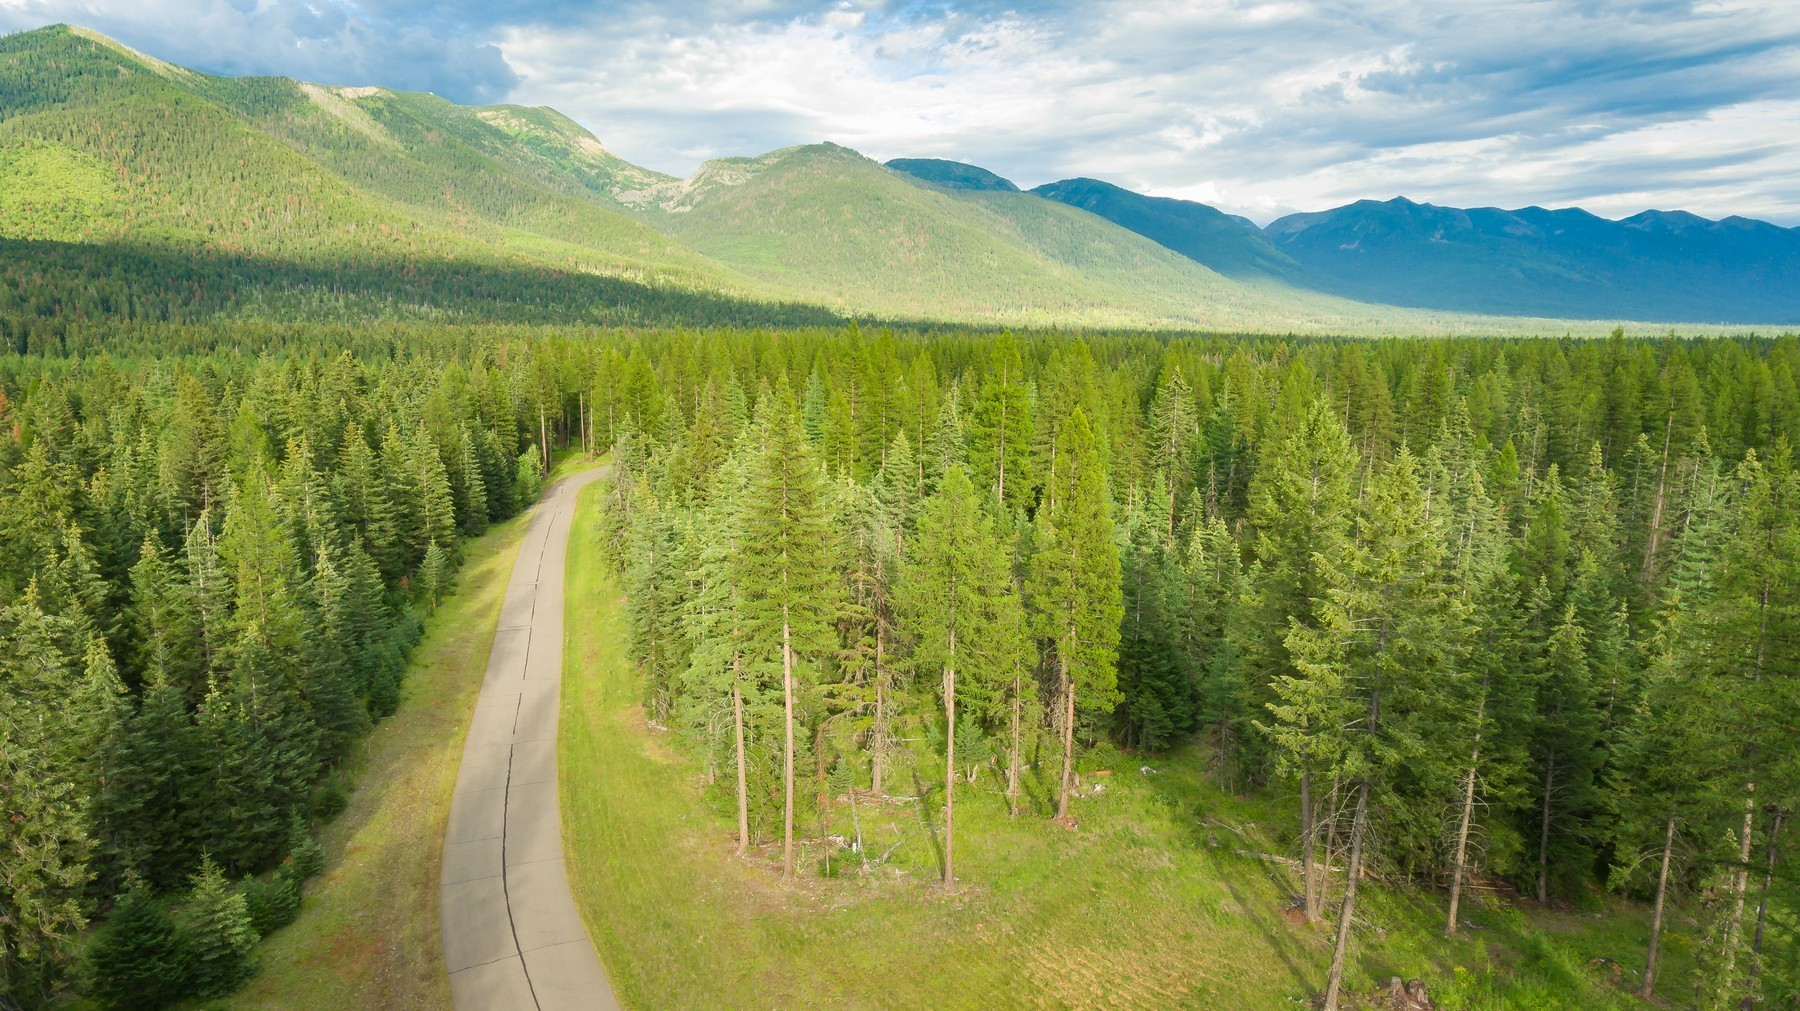 Land for Sale at Nhn Jewel Basin Ranch Road, Lots 2 3 4, Bigfork, M Nhn Jewel Basin Ranch Rd Lots 2 3 4 Bigfork, Montana, 59911 United States